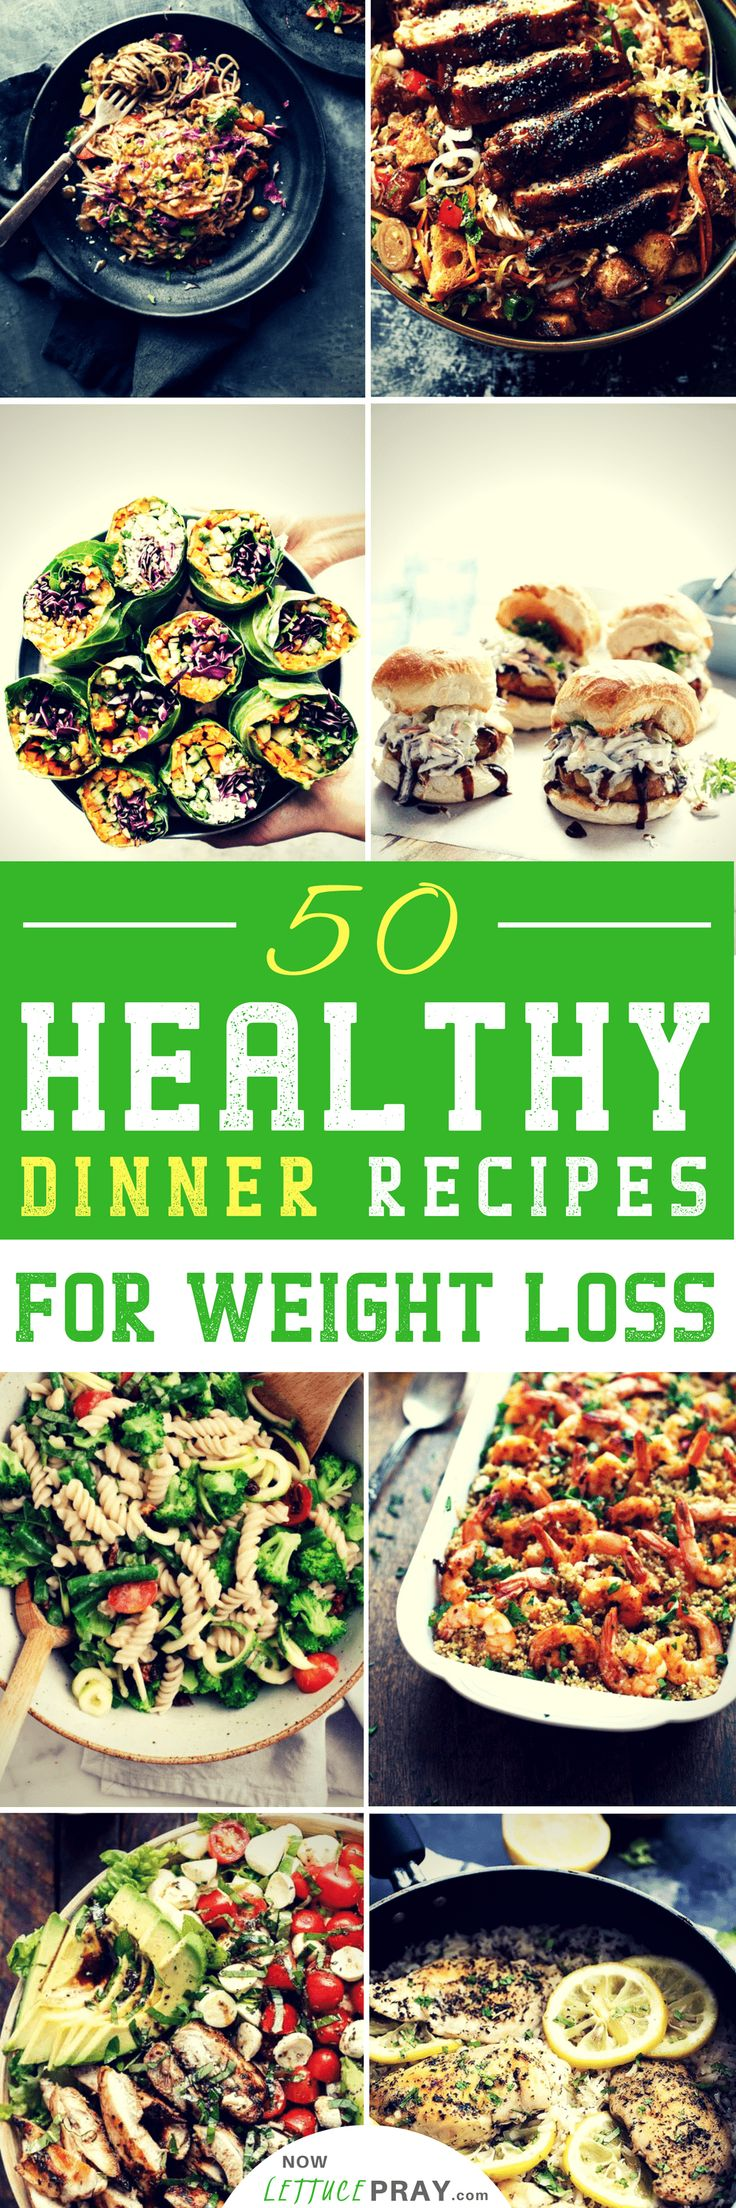 Dinner is a great opportunity to share a quality meal and conversation with friends and family. A hearty, well-balanced dinner that is rich in vitamins, minerals and macro-nutrients helps nourish your body throughout your (hopefully) 8+ hours of sleep. Check out these 50 healthy dinner recipes to help you lose weight.